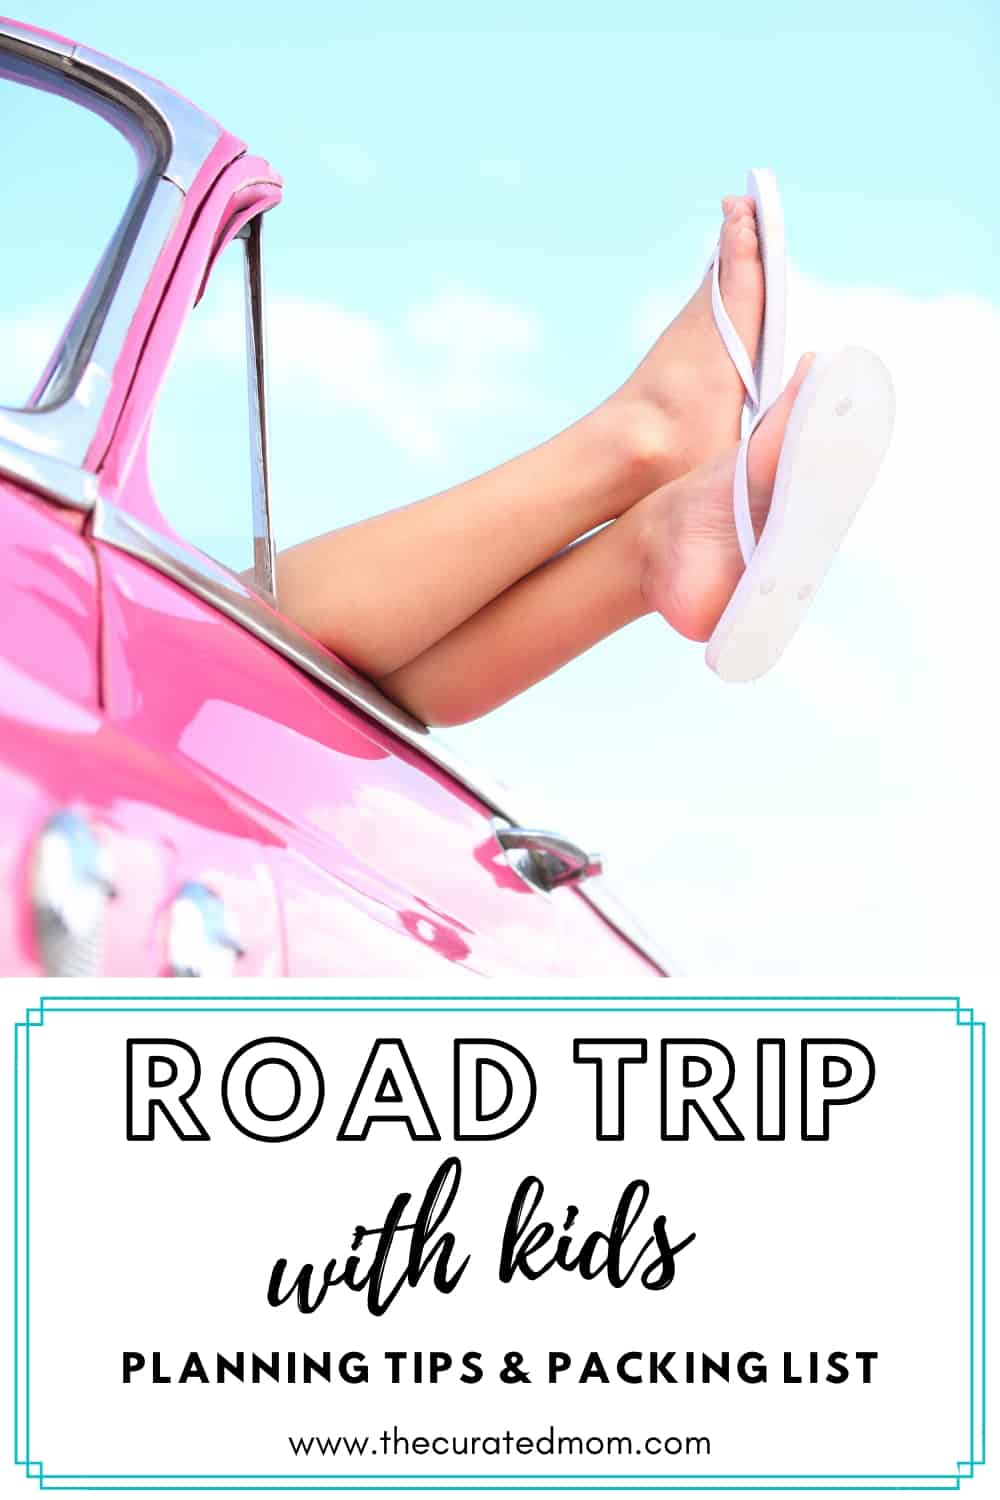 Pink convertible car with legs sticking out with white flip flops on with text reading Road Trip with kids Planning tips and packing list